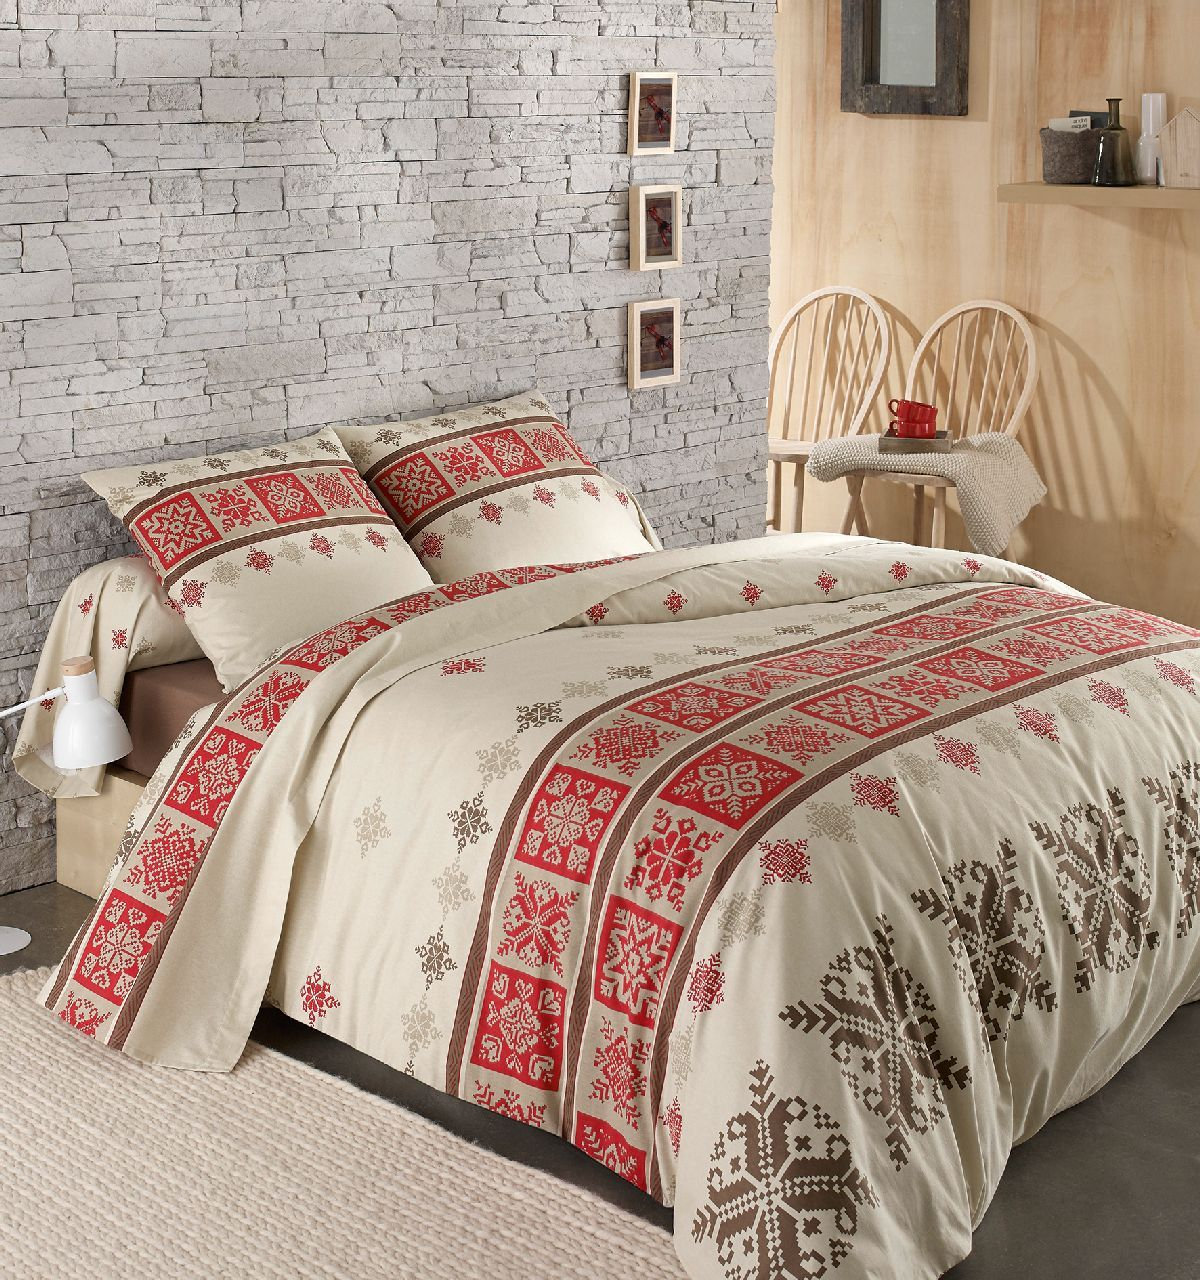 parure de lit 3 pi ces flanelle cork rouge 240x300 2 taies. Black Bedroom Furniture Sets. Home Design Ideas